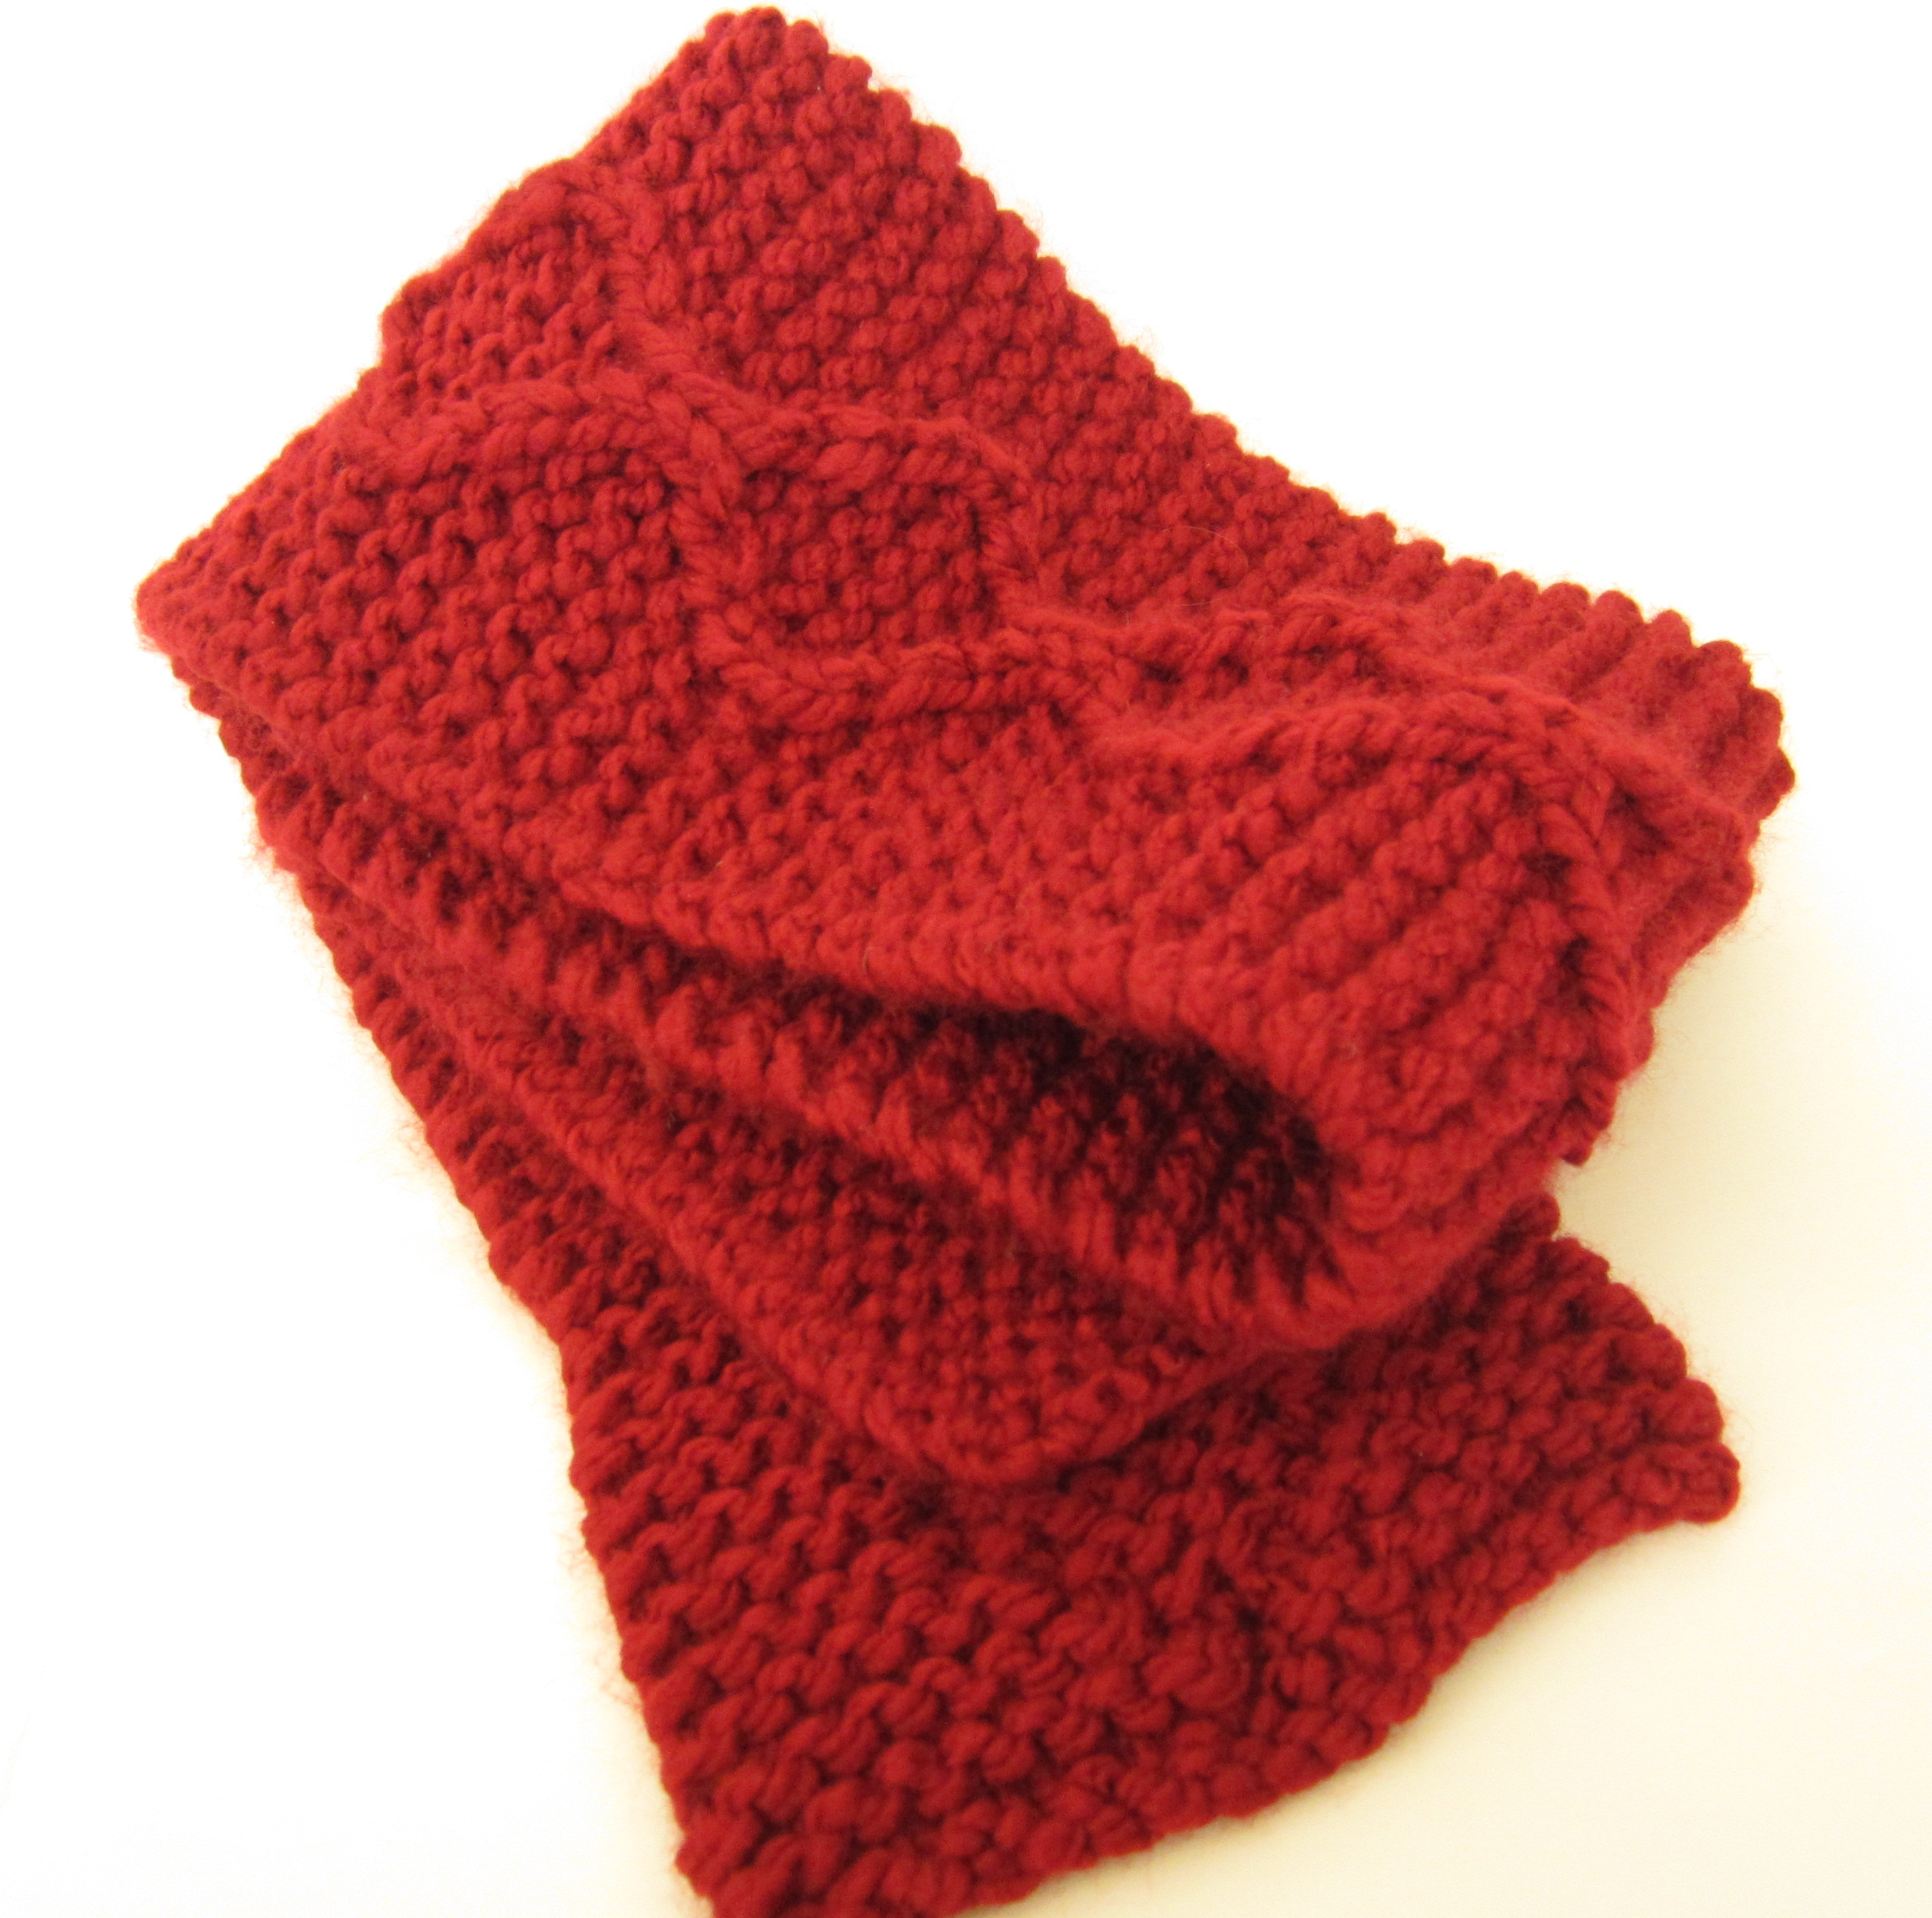 Knitting Summer Scarves : Quick free knitting patterns